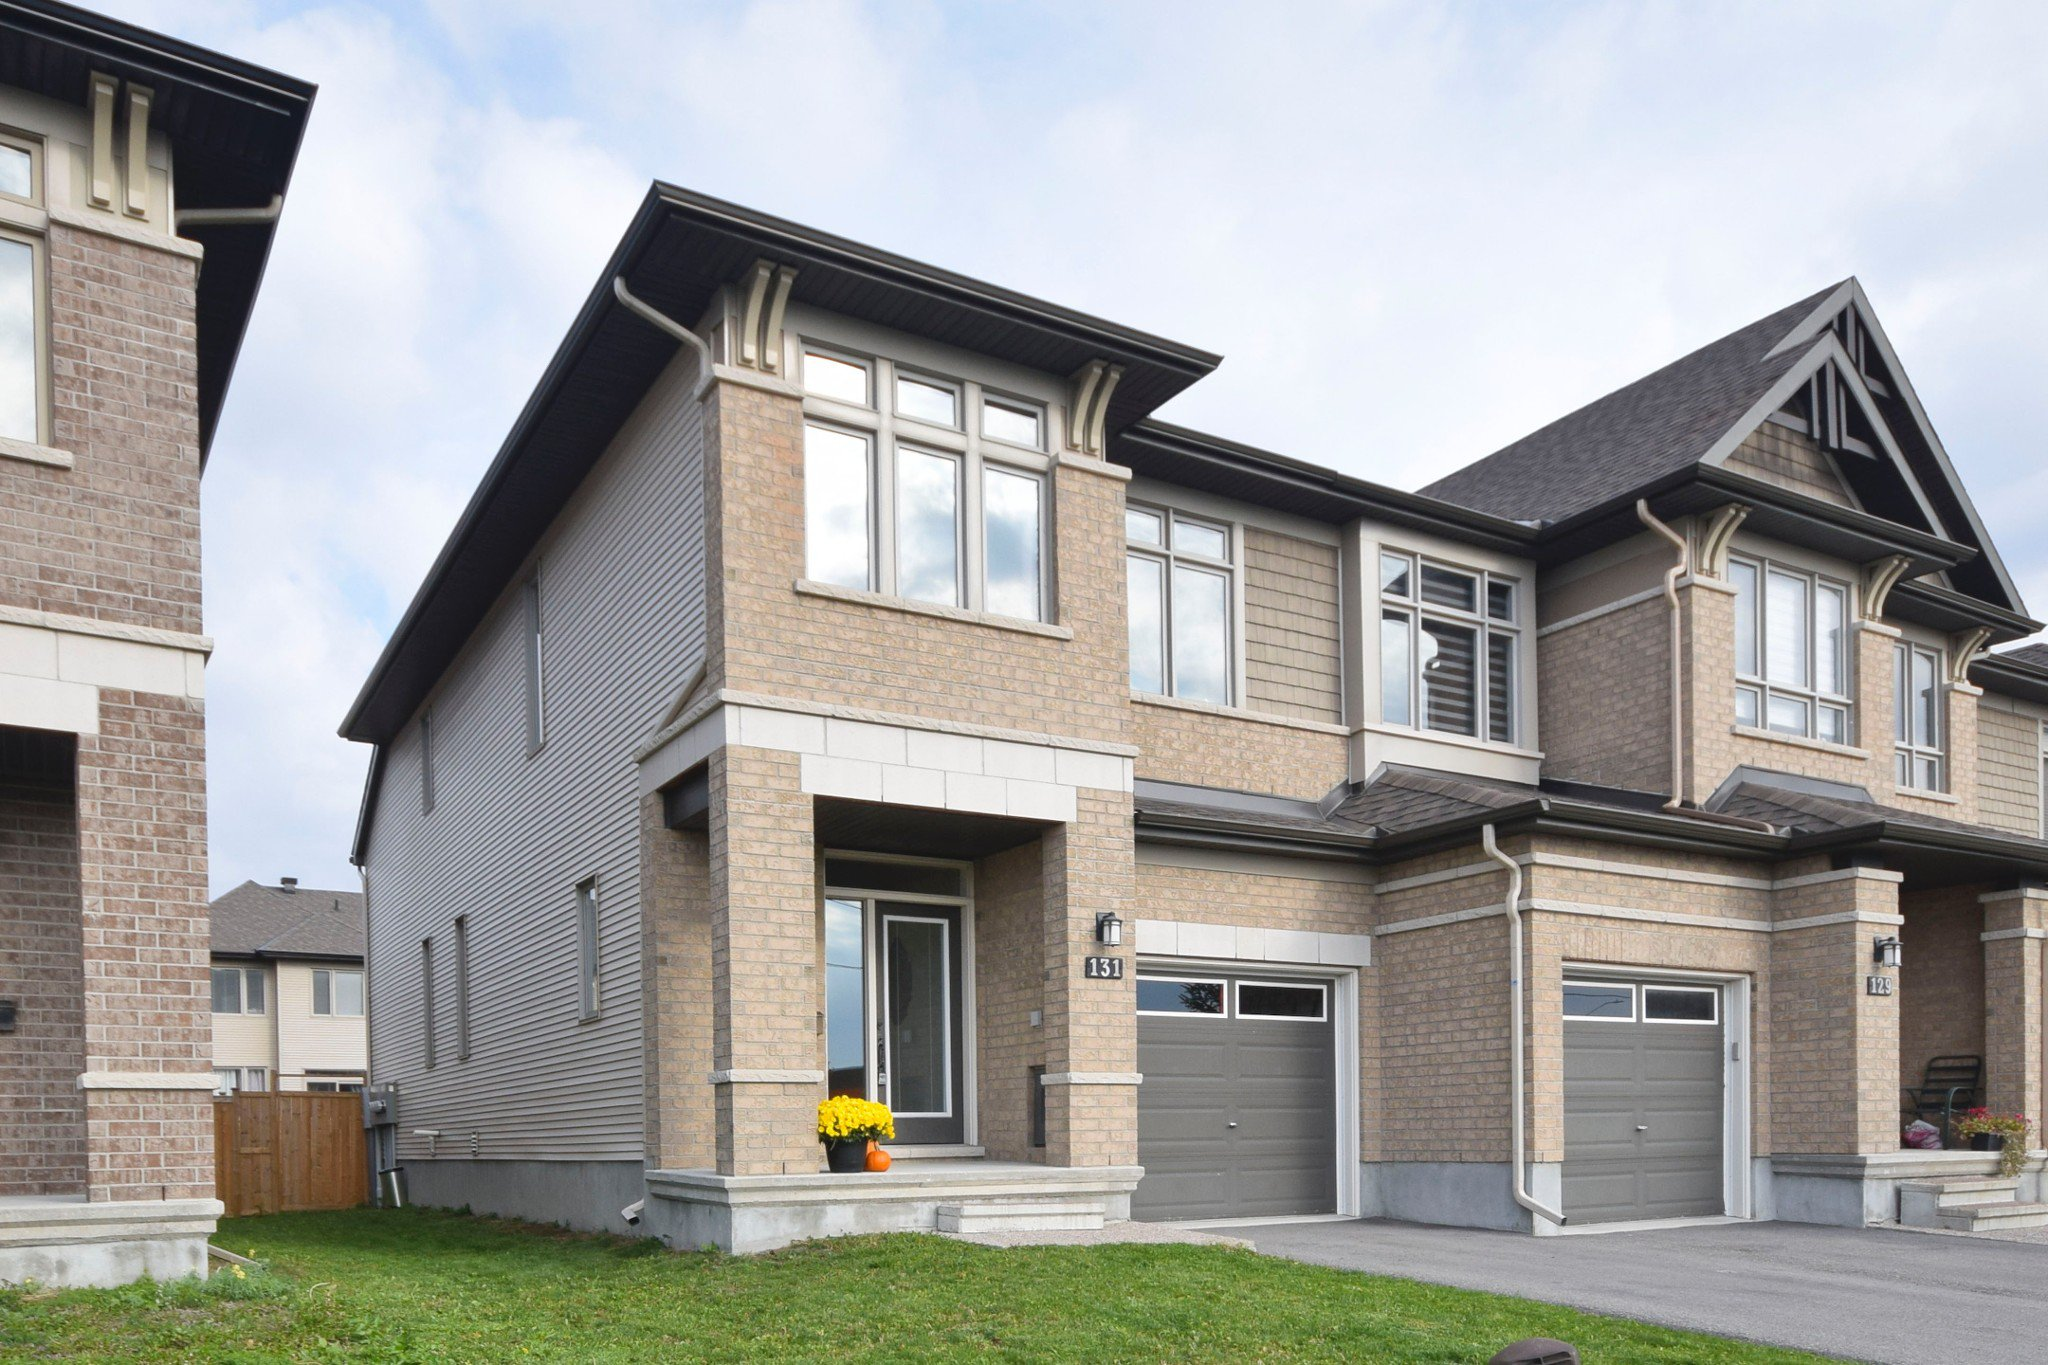 Photo 4: Photos: 131 Popplewell Crescent in Ottawa: Cedargrove / Fraserdale House for sale (Barrhaven)  : MLS®# 1130335